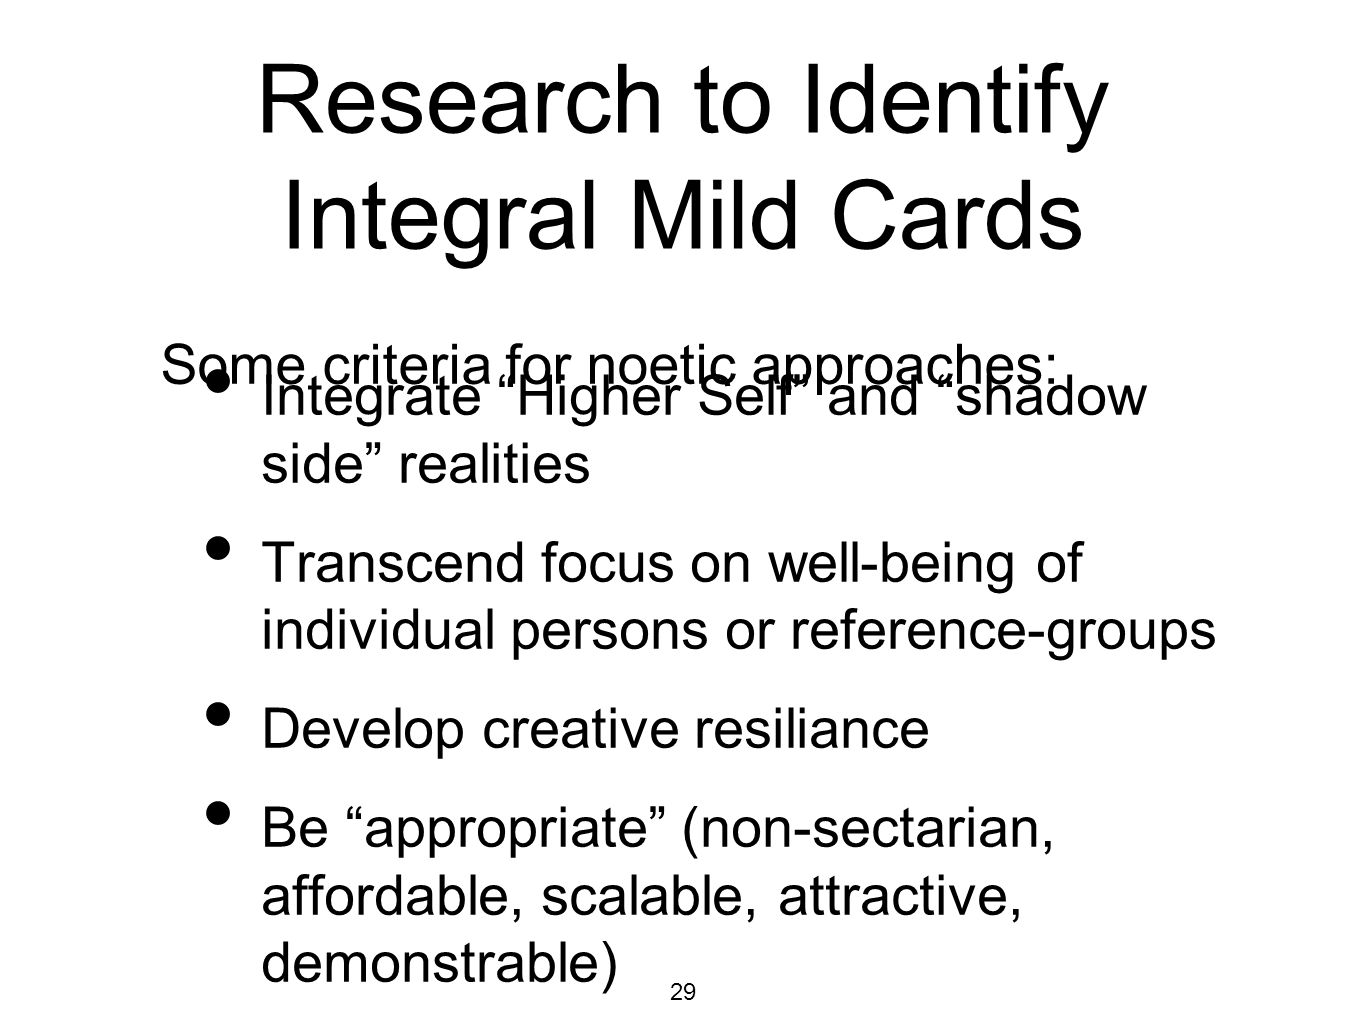 29 Research to Identify Integral Mild Cards Integrate Higher Self and shadow side realities Transcend focus on well-being of individual persons or reference-groups Develop creative resiliance Be appropriate (non-sectarian, affordable, scalable, attractive, demonstrable) Some criteria for noetic approaches: